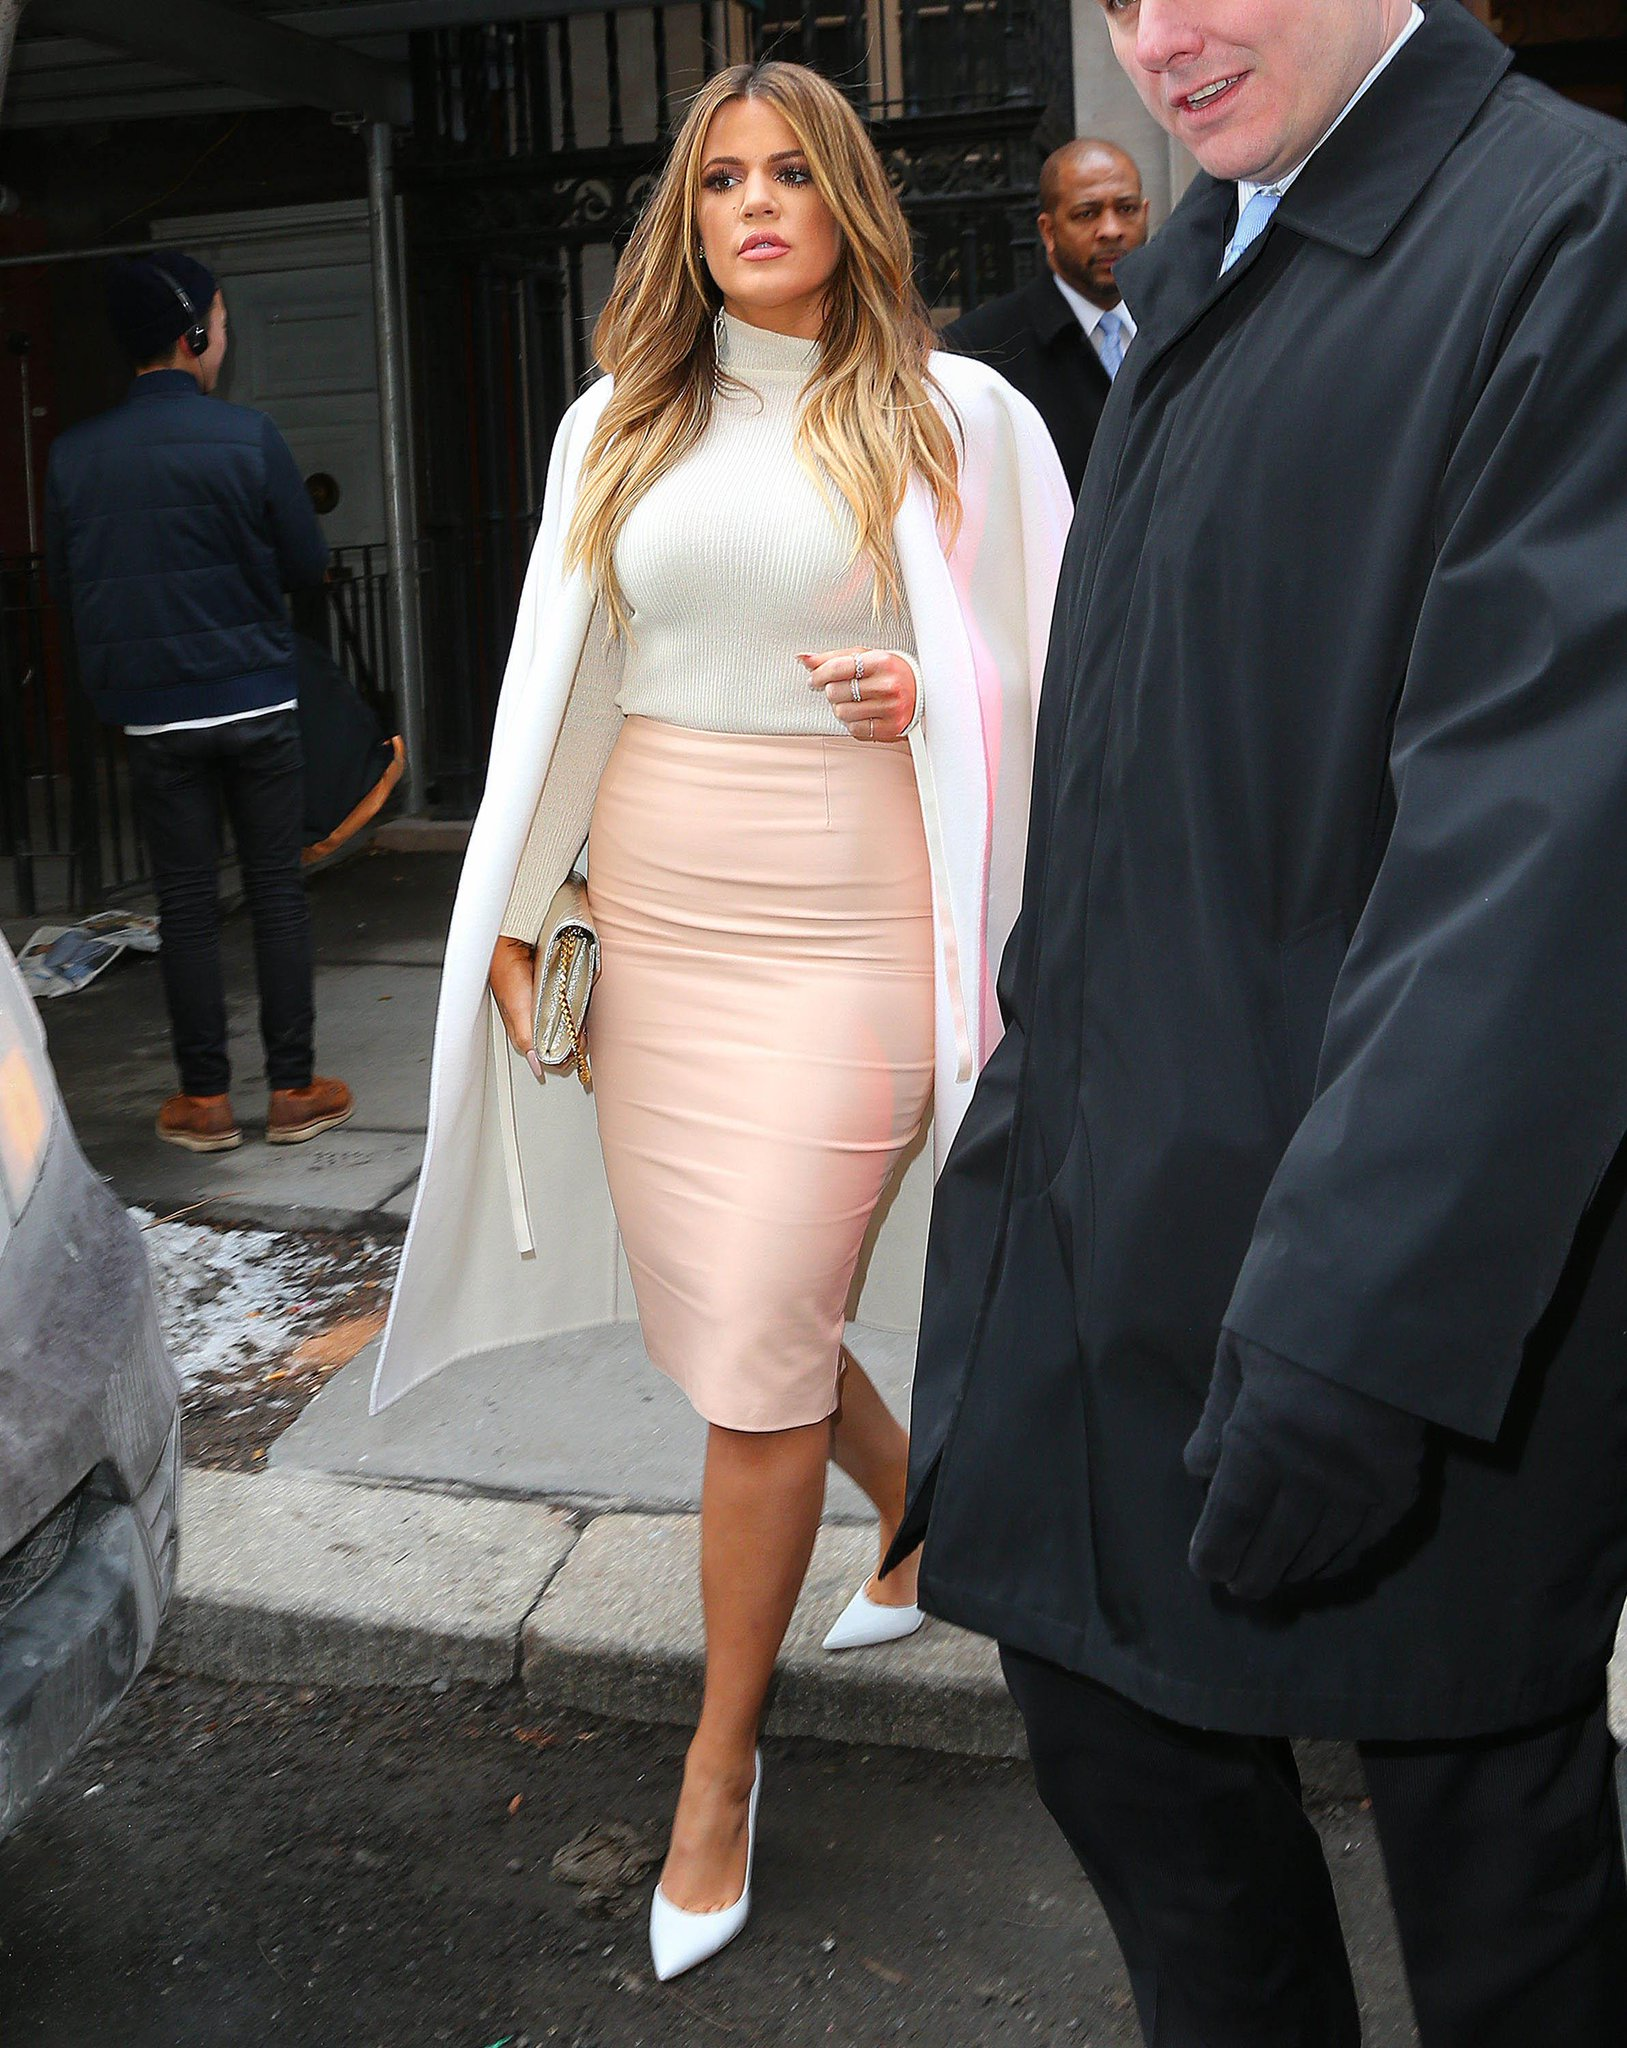 Plus-size celebrities with stunning wardrobes: http://t.co/psOduROzpR http://t.co/2Corfmv8ea